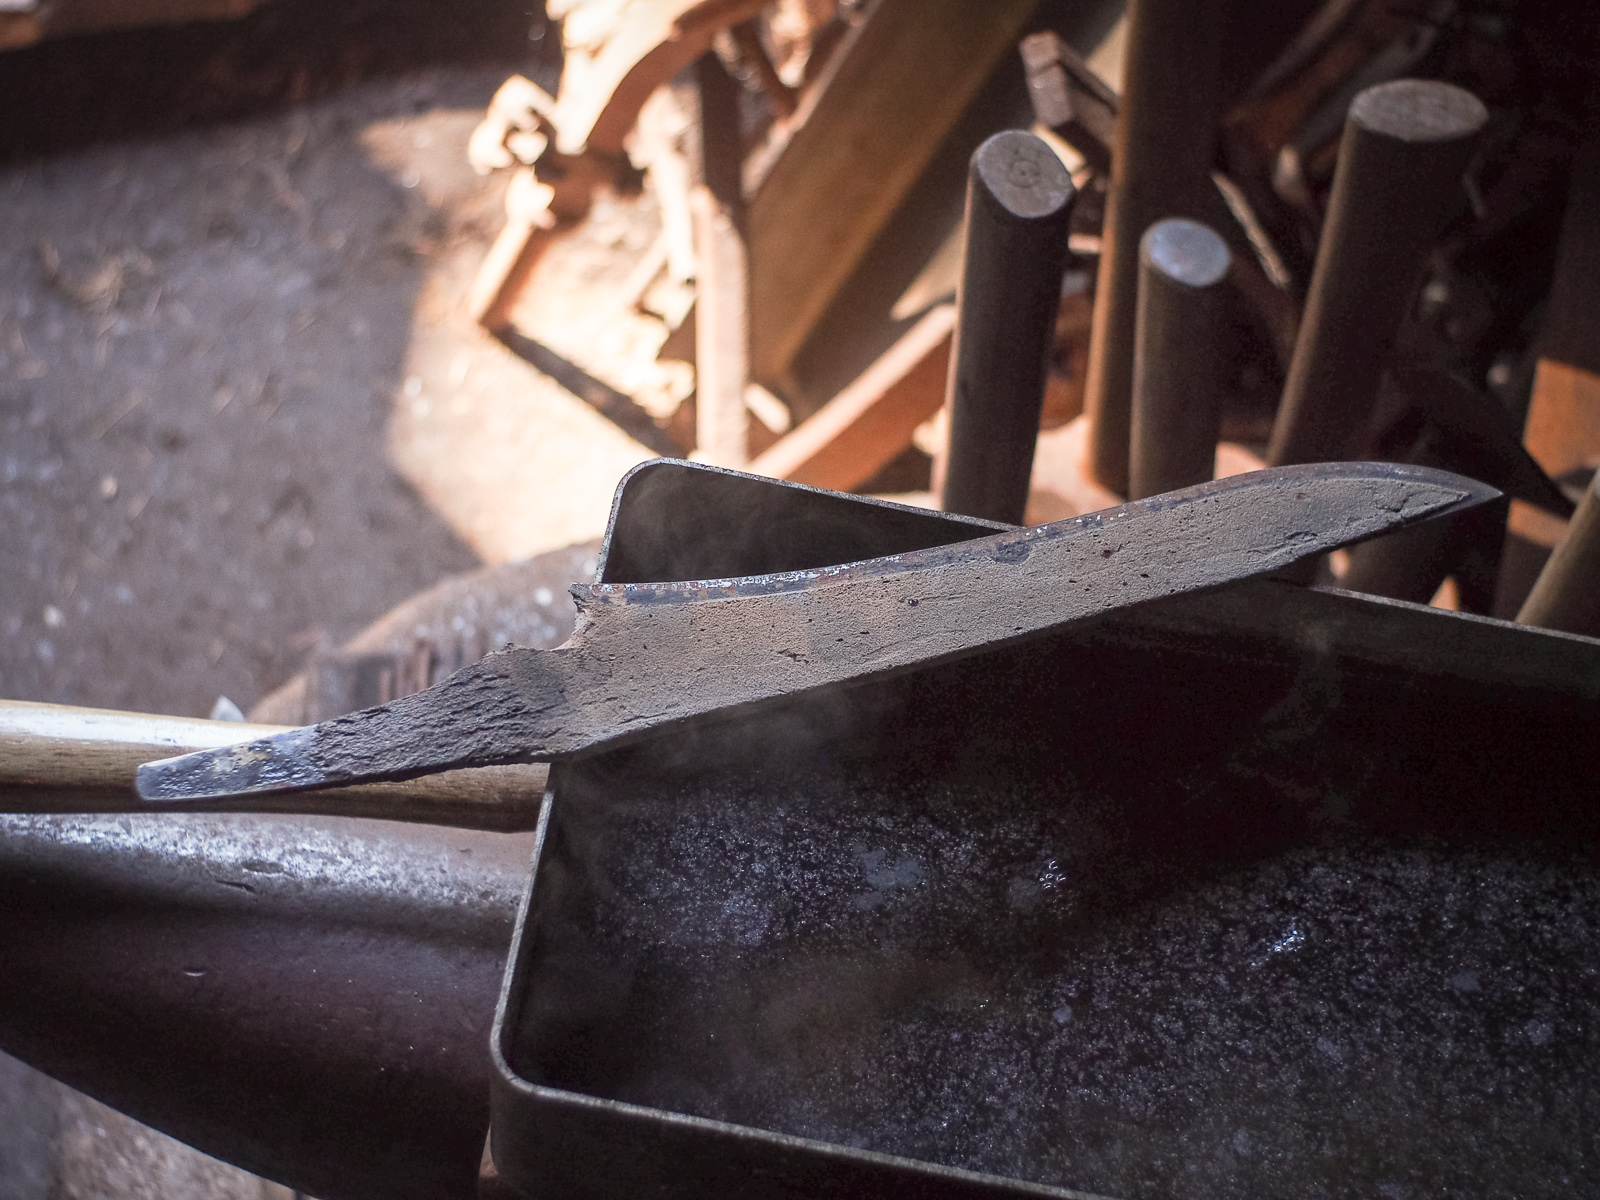 Island Blacksmith: Charcoal forged blades made from reclaimed and natural materials using traditional techniques